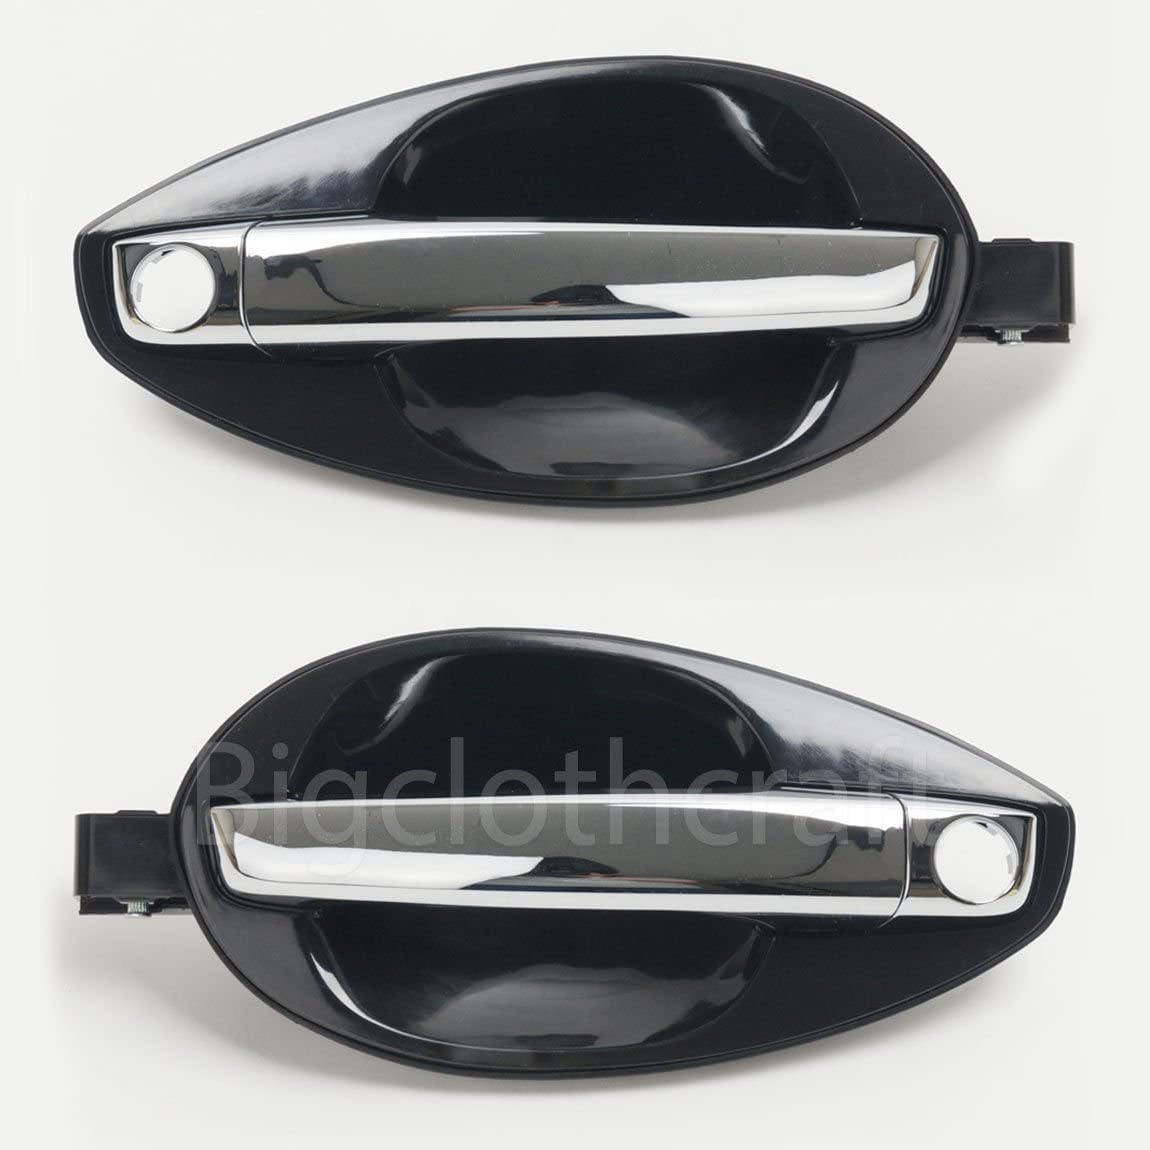 Outside Door Handle Unpainted For 2003 2008 Hyundai Tiburon Coupe